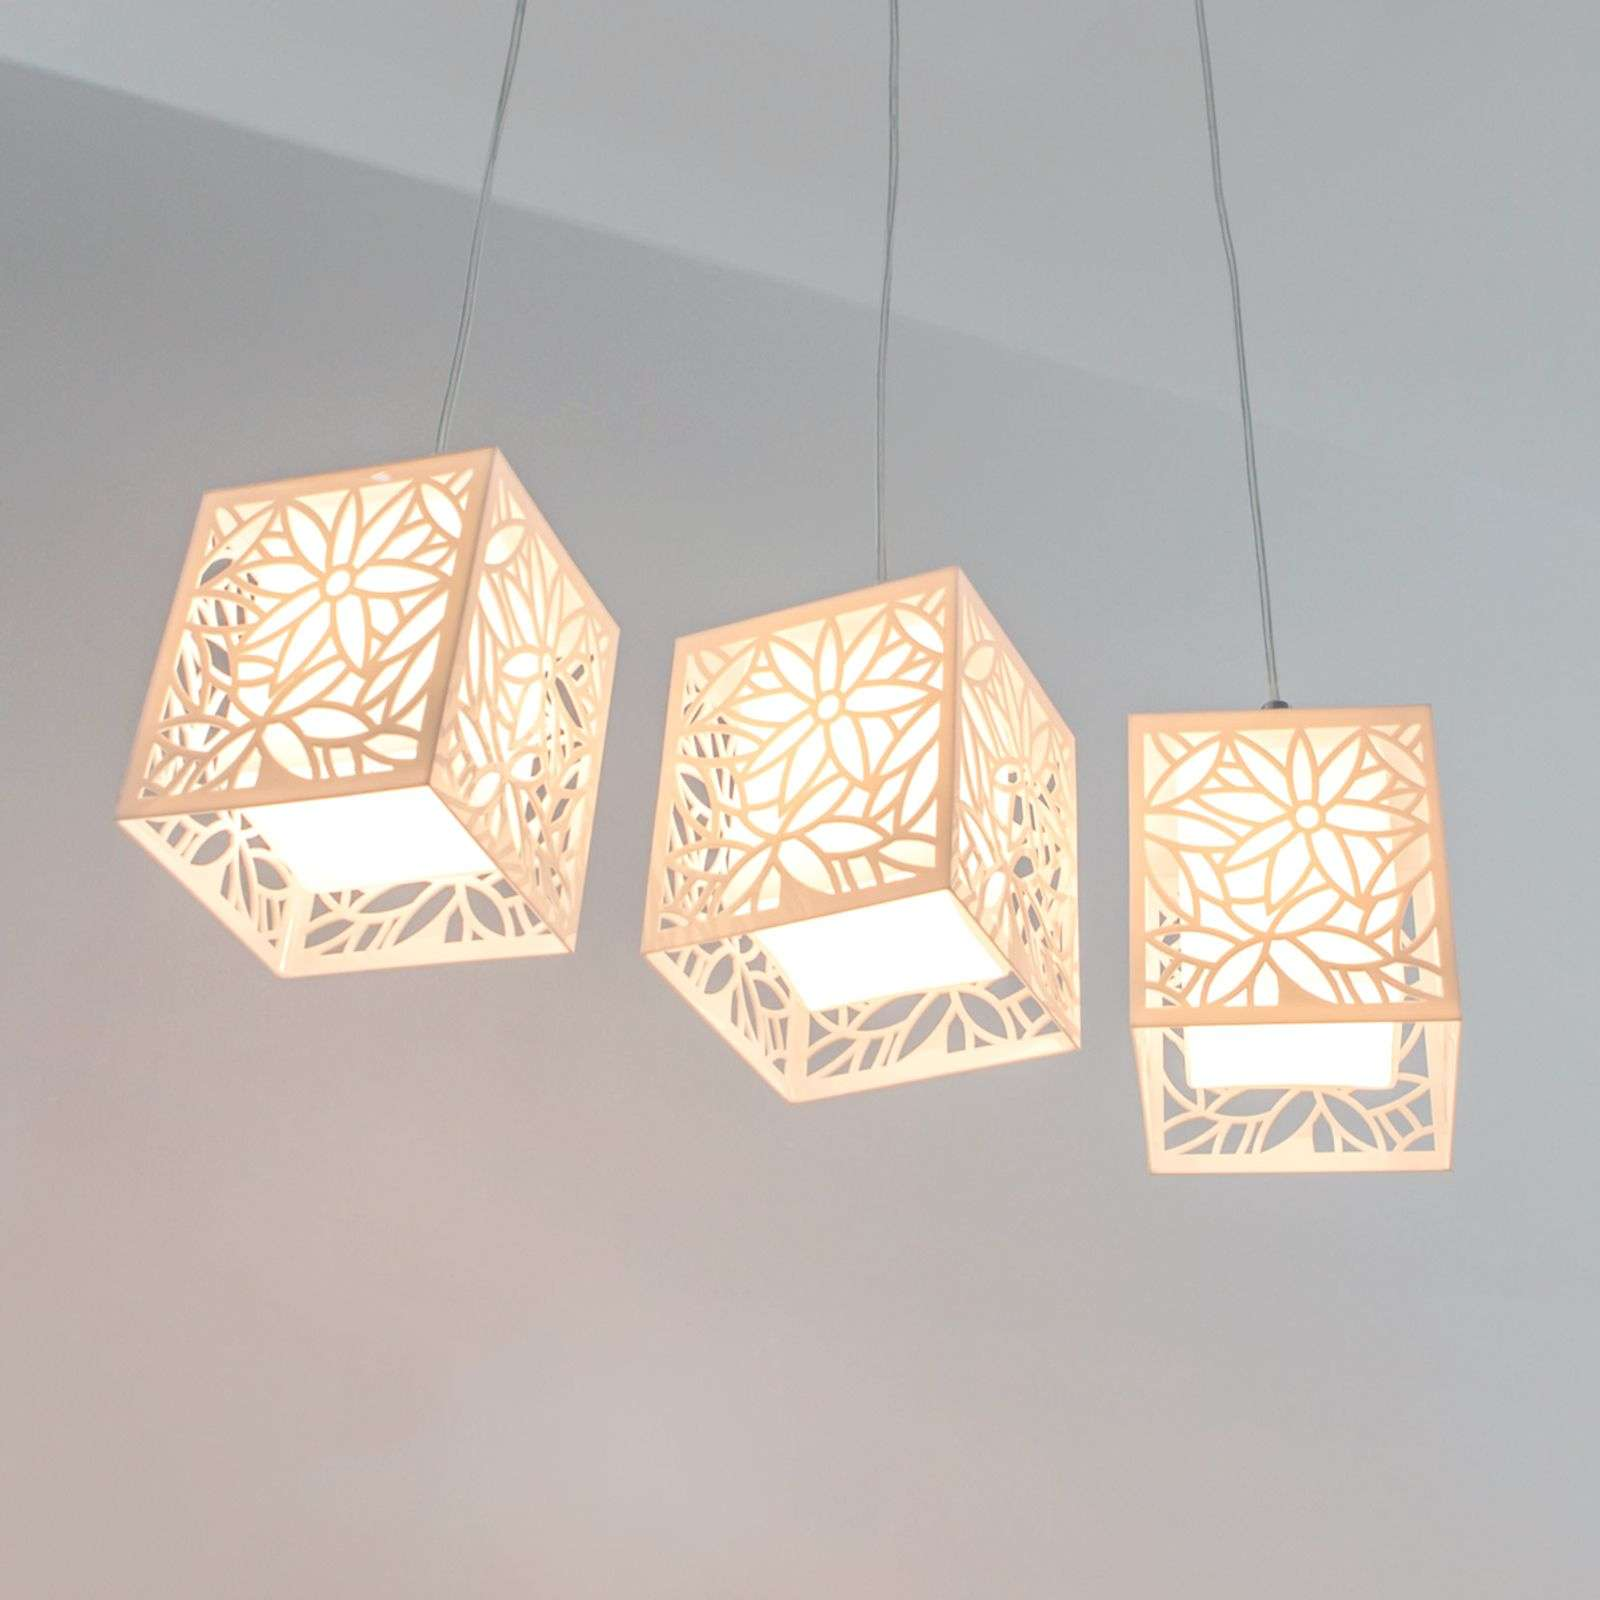 Remarquable suspension Anika, 3lampes